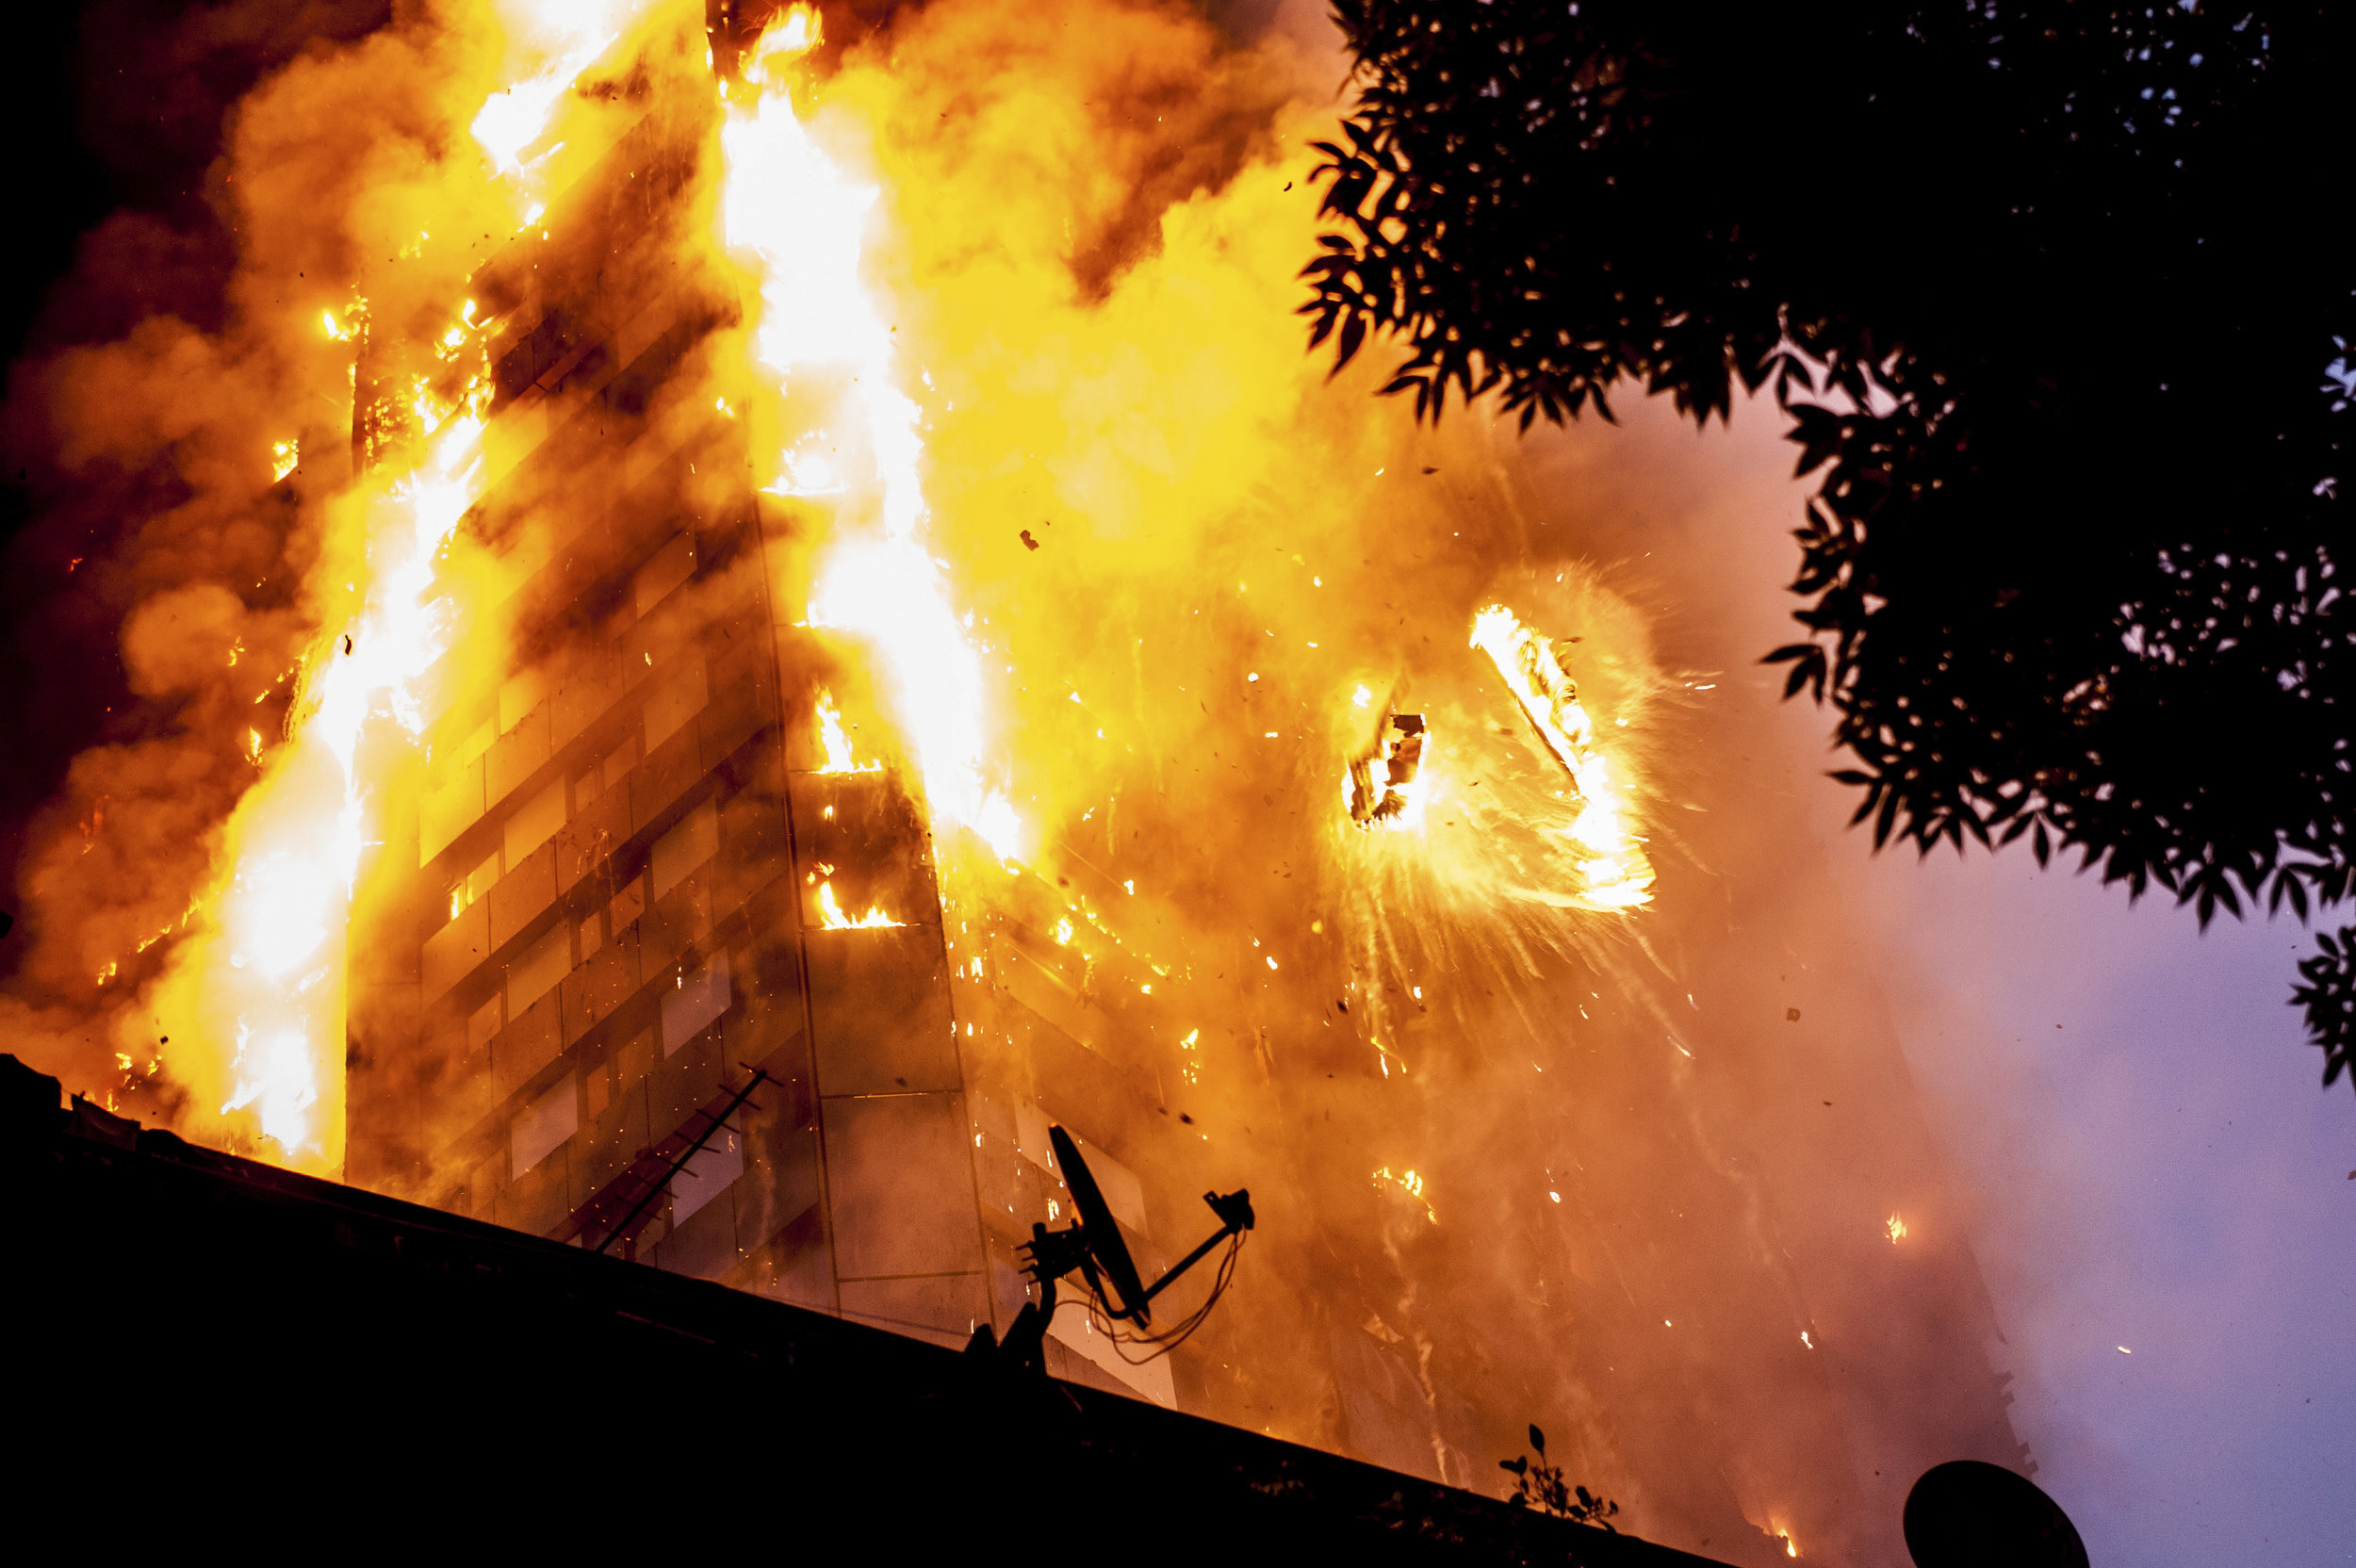 The fire at Grenfell Tower in the Royal Borough of Kensington and Chelsea engulfs the 24-storey building as 200 firefighters and 40 fire engines attend the scene and attempt to rescue as many residents as possible.Photo by Guilhem Baker  14 June 2017